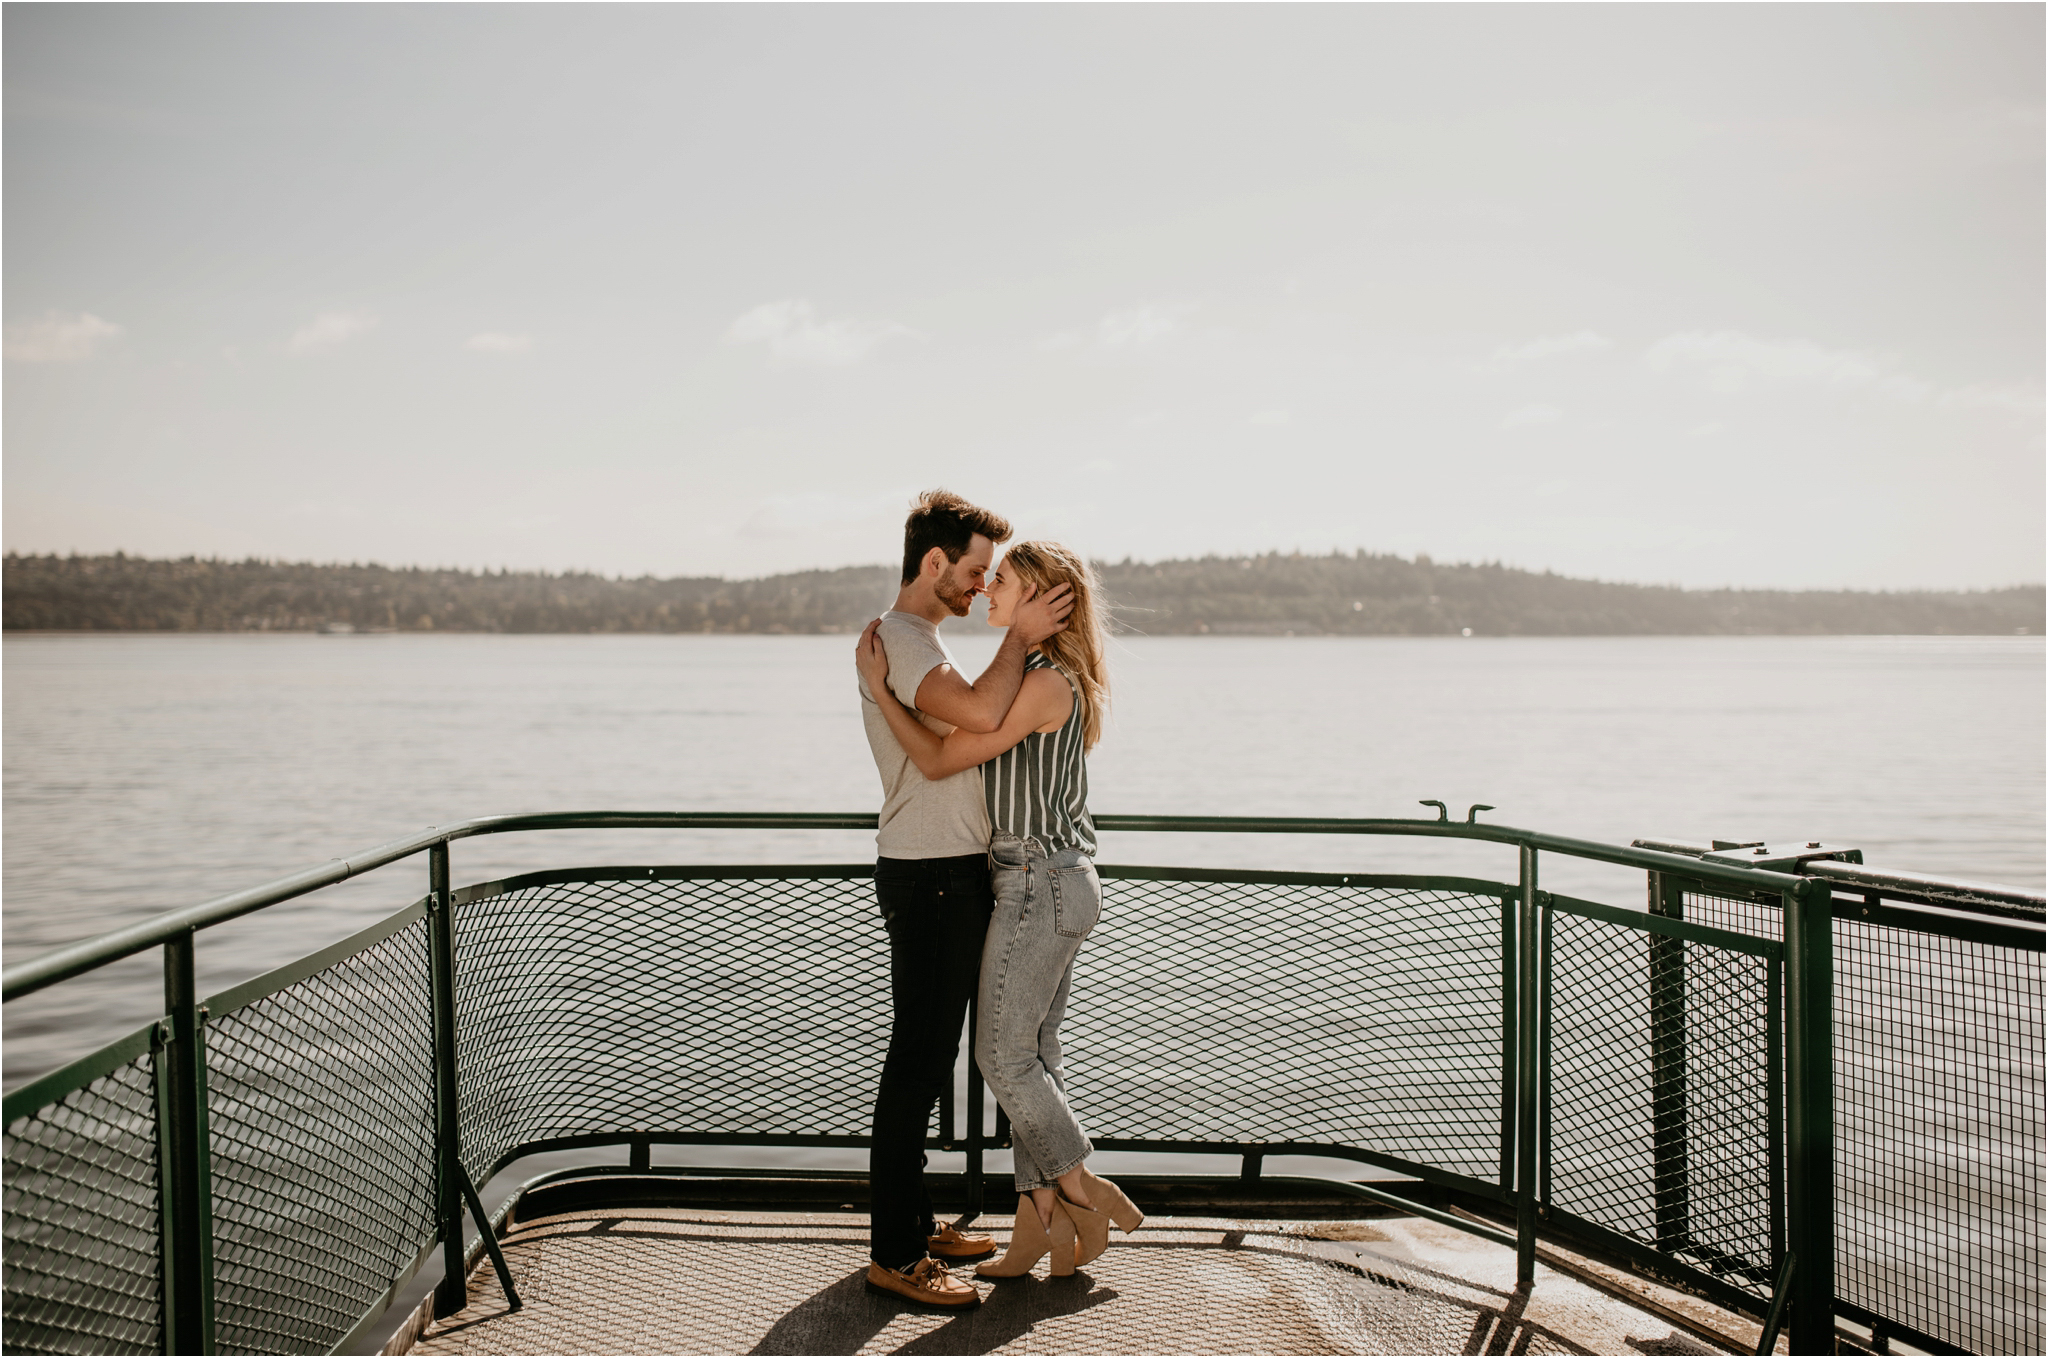 rile-and-ryan-fauntleroy-ferry-vashon-island-seattle-engagement-session-045.jpg